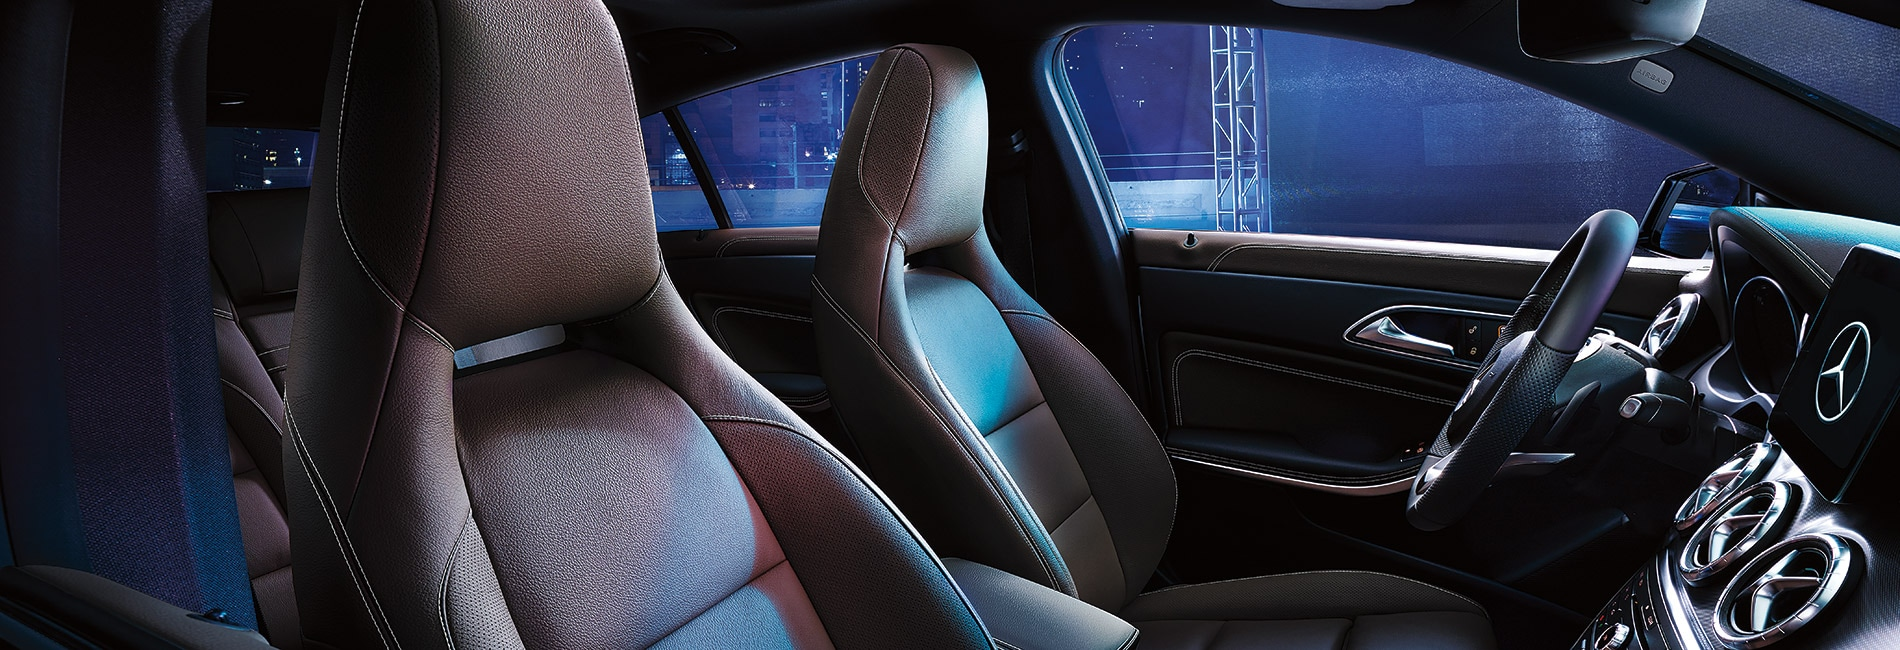 Mercedes Benz A-Class Interior Vehicle Features